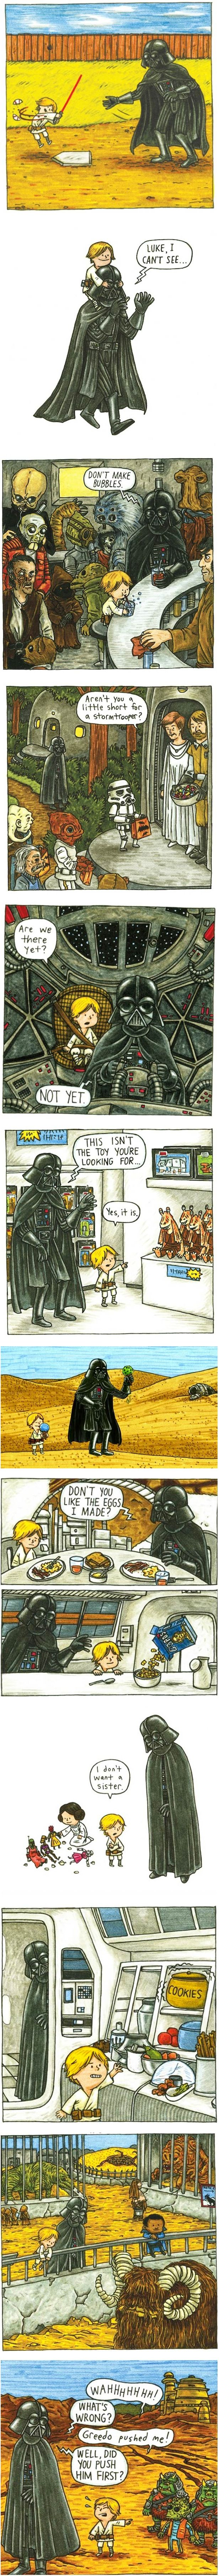 Scenes from Luke Skywalker's childhood if Darth Vader had been a good dad...